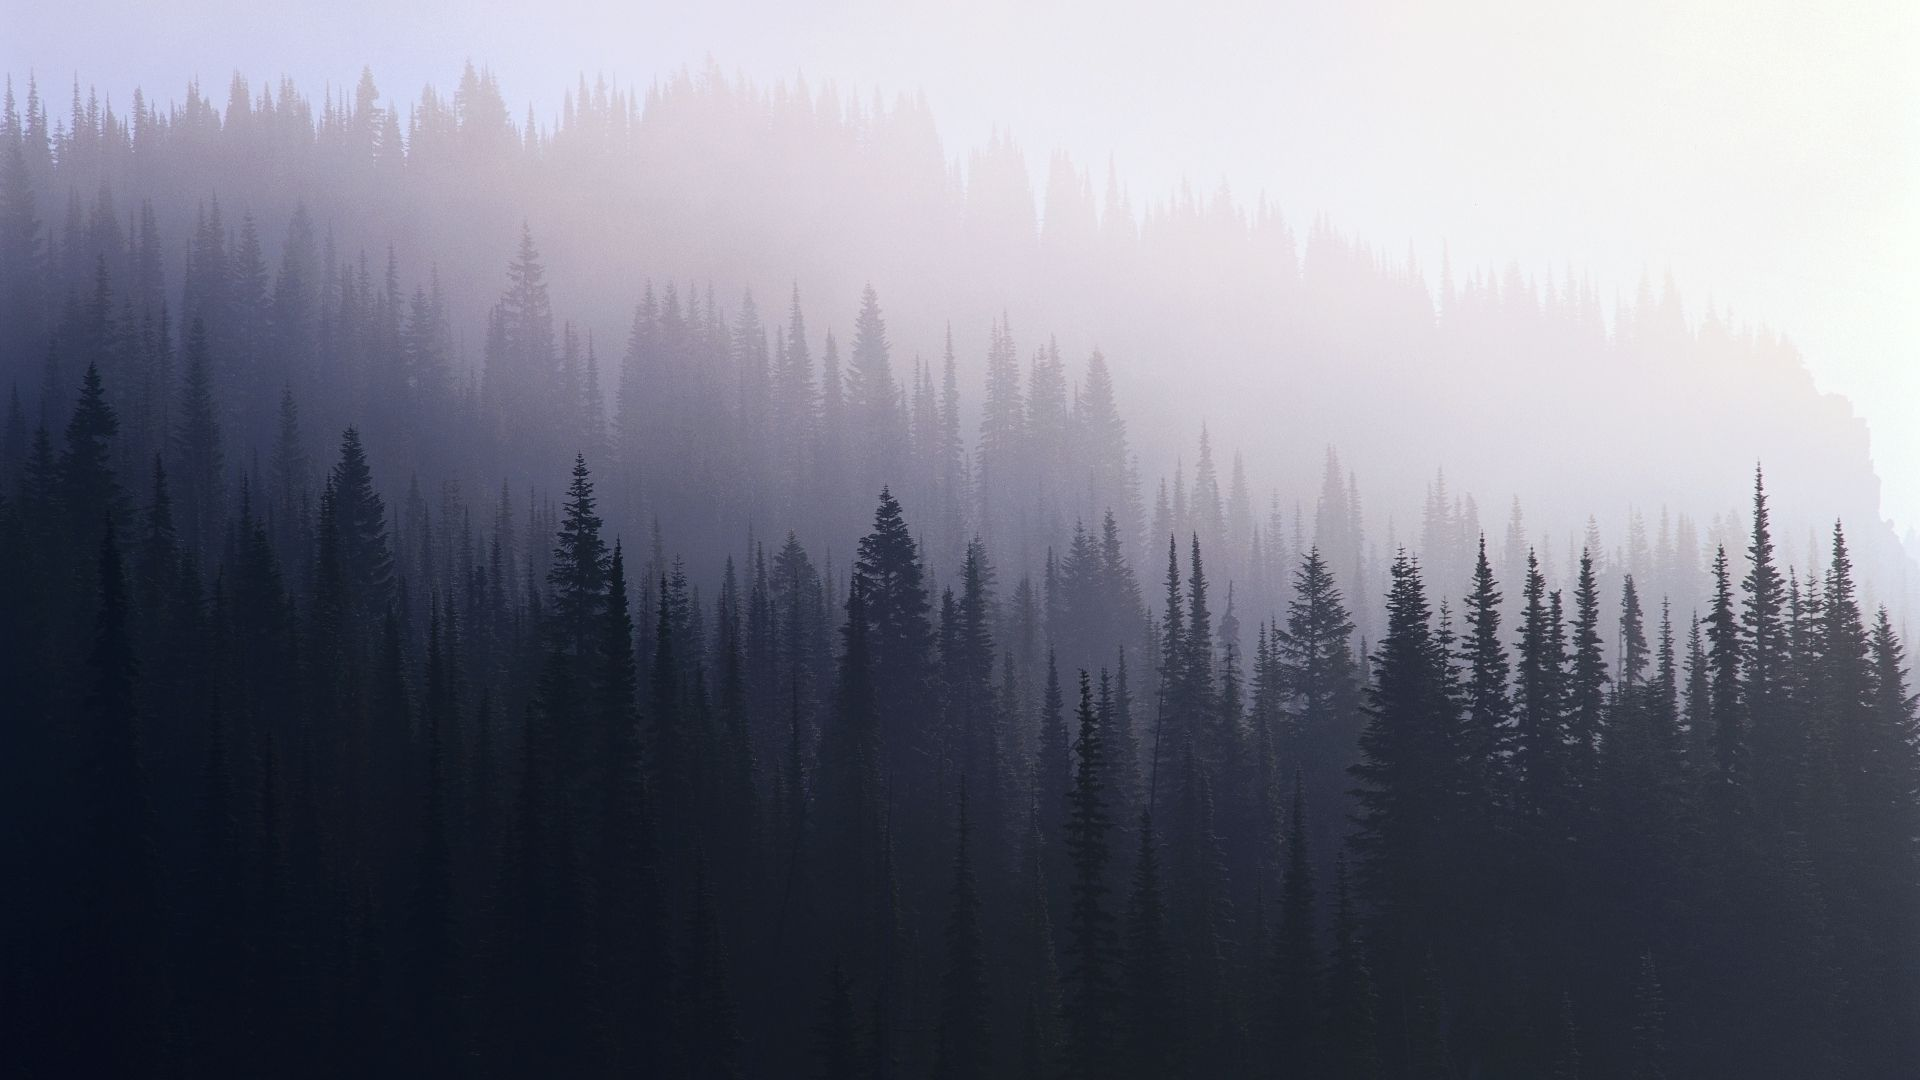 Beautiful Wallpapers For Iphone 6 Plus Photography Dark Forest Wallpaper Hipster Wallpaper